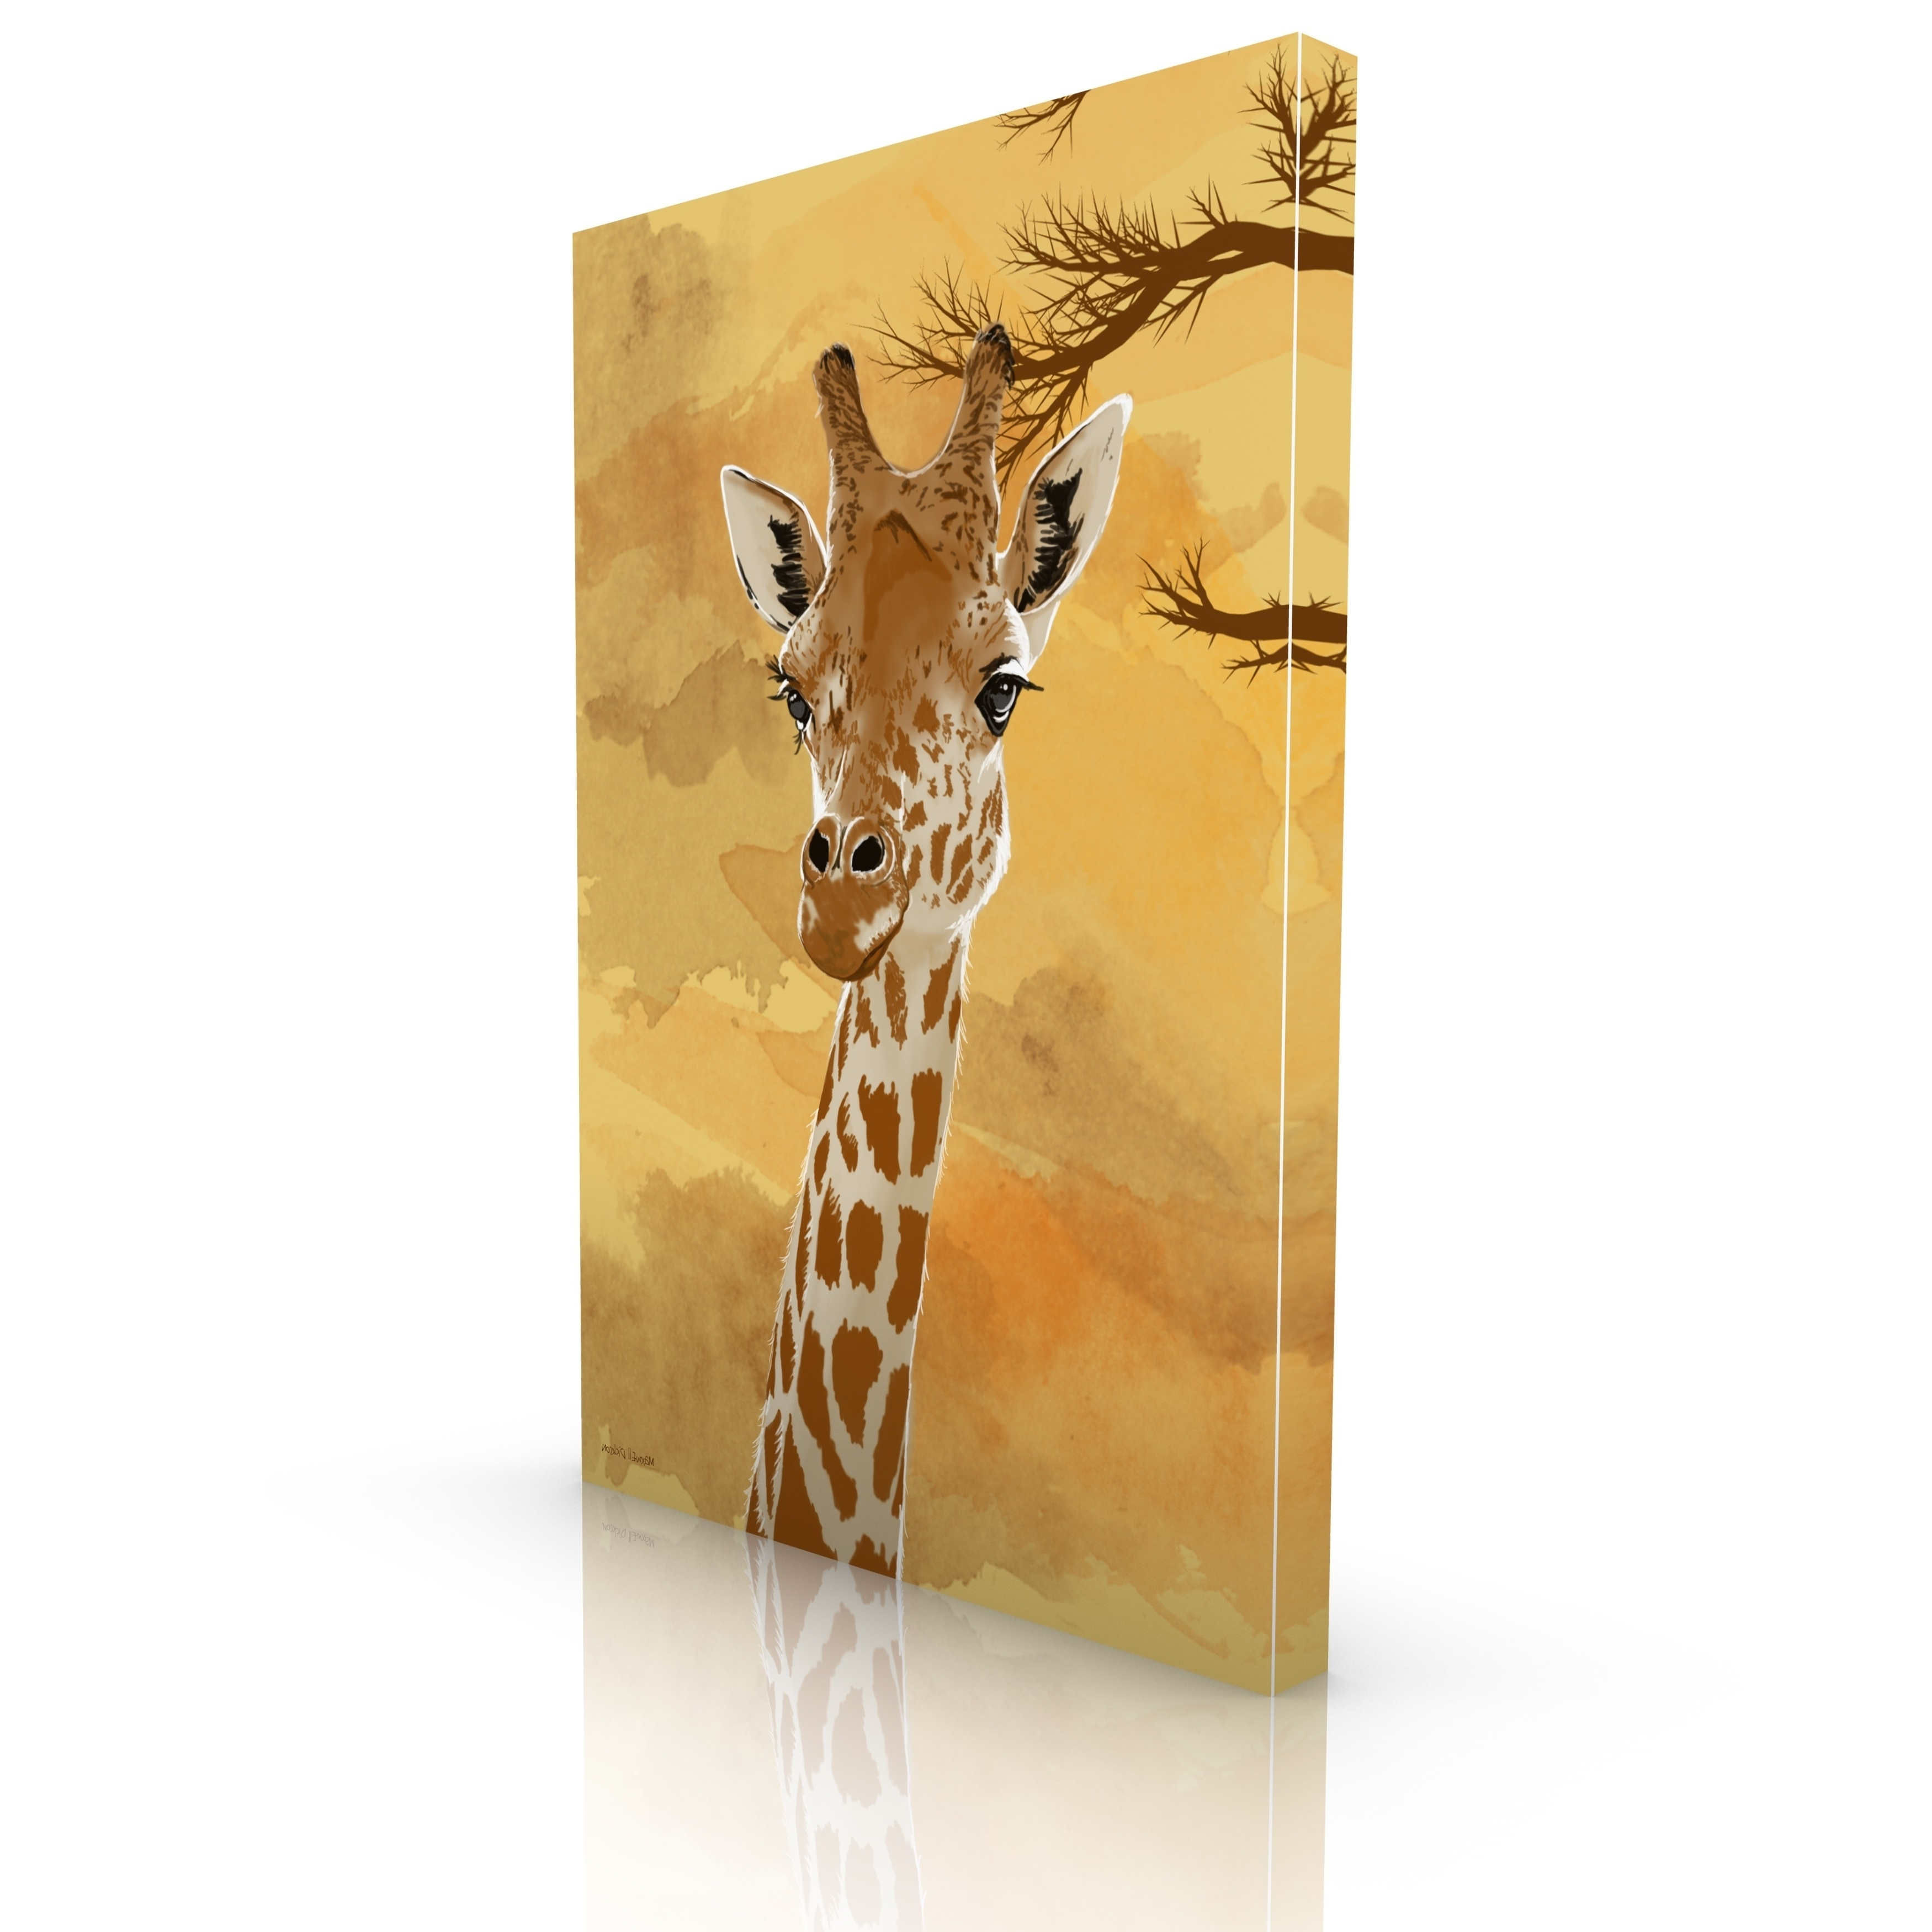 Most Popular Giraffe Canvas Wall Art Pertaining To Maxwell Dickson 'giraffe' Canvas Wall Art – Free Shipping Today (View 9 of 15)